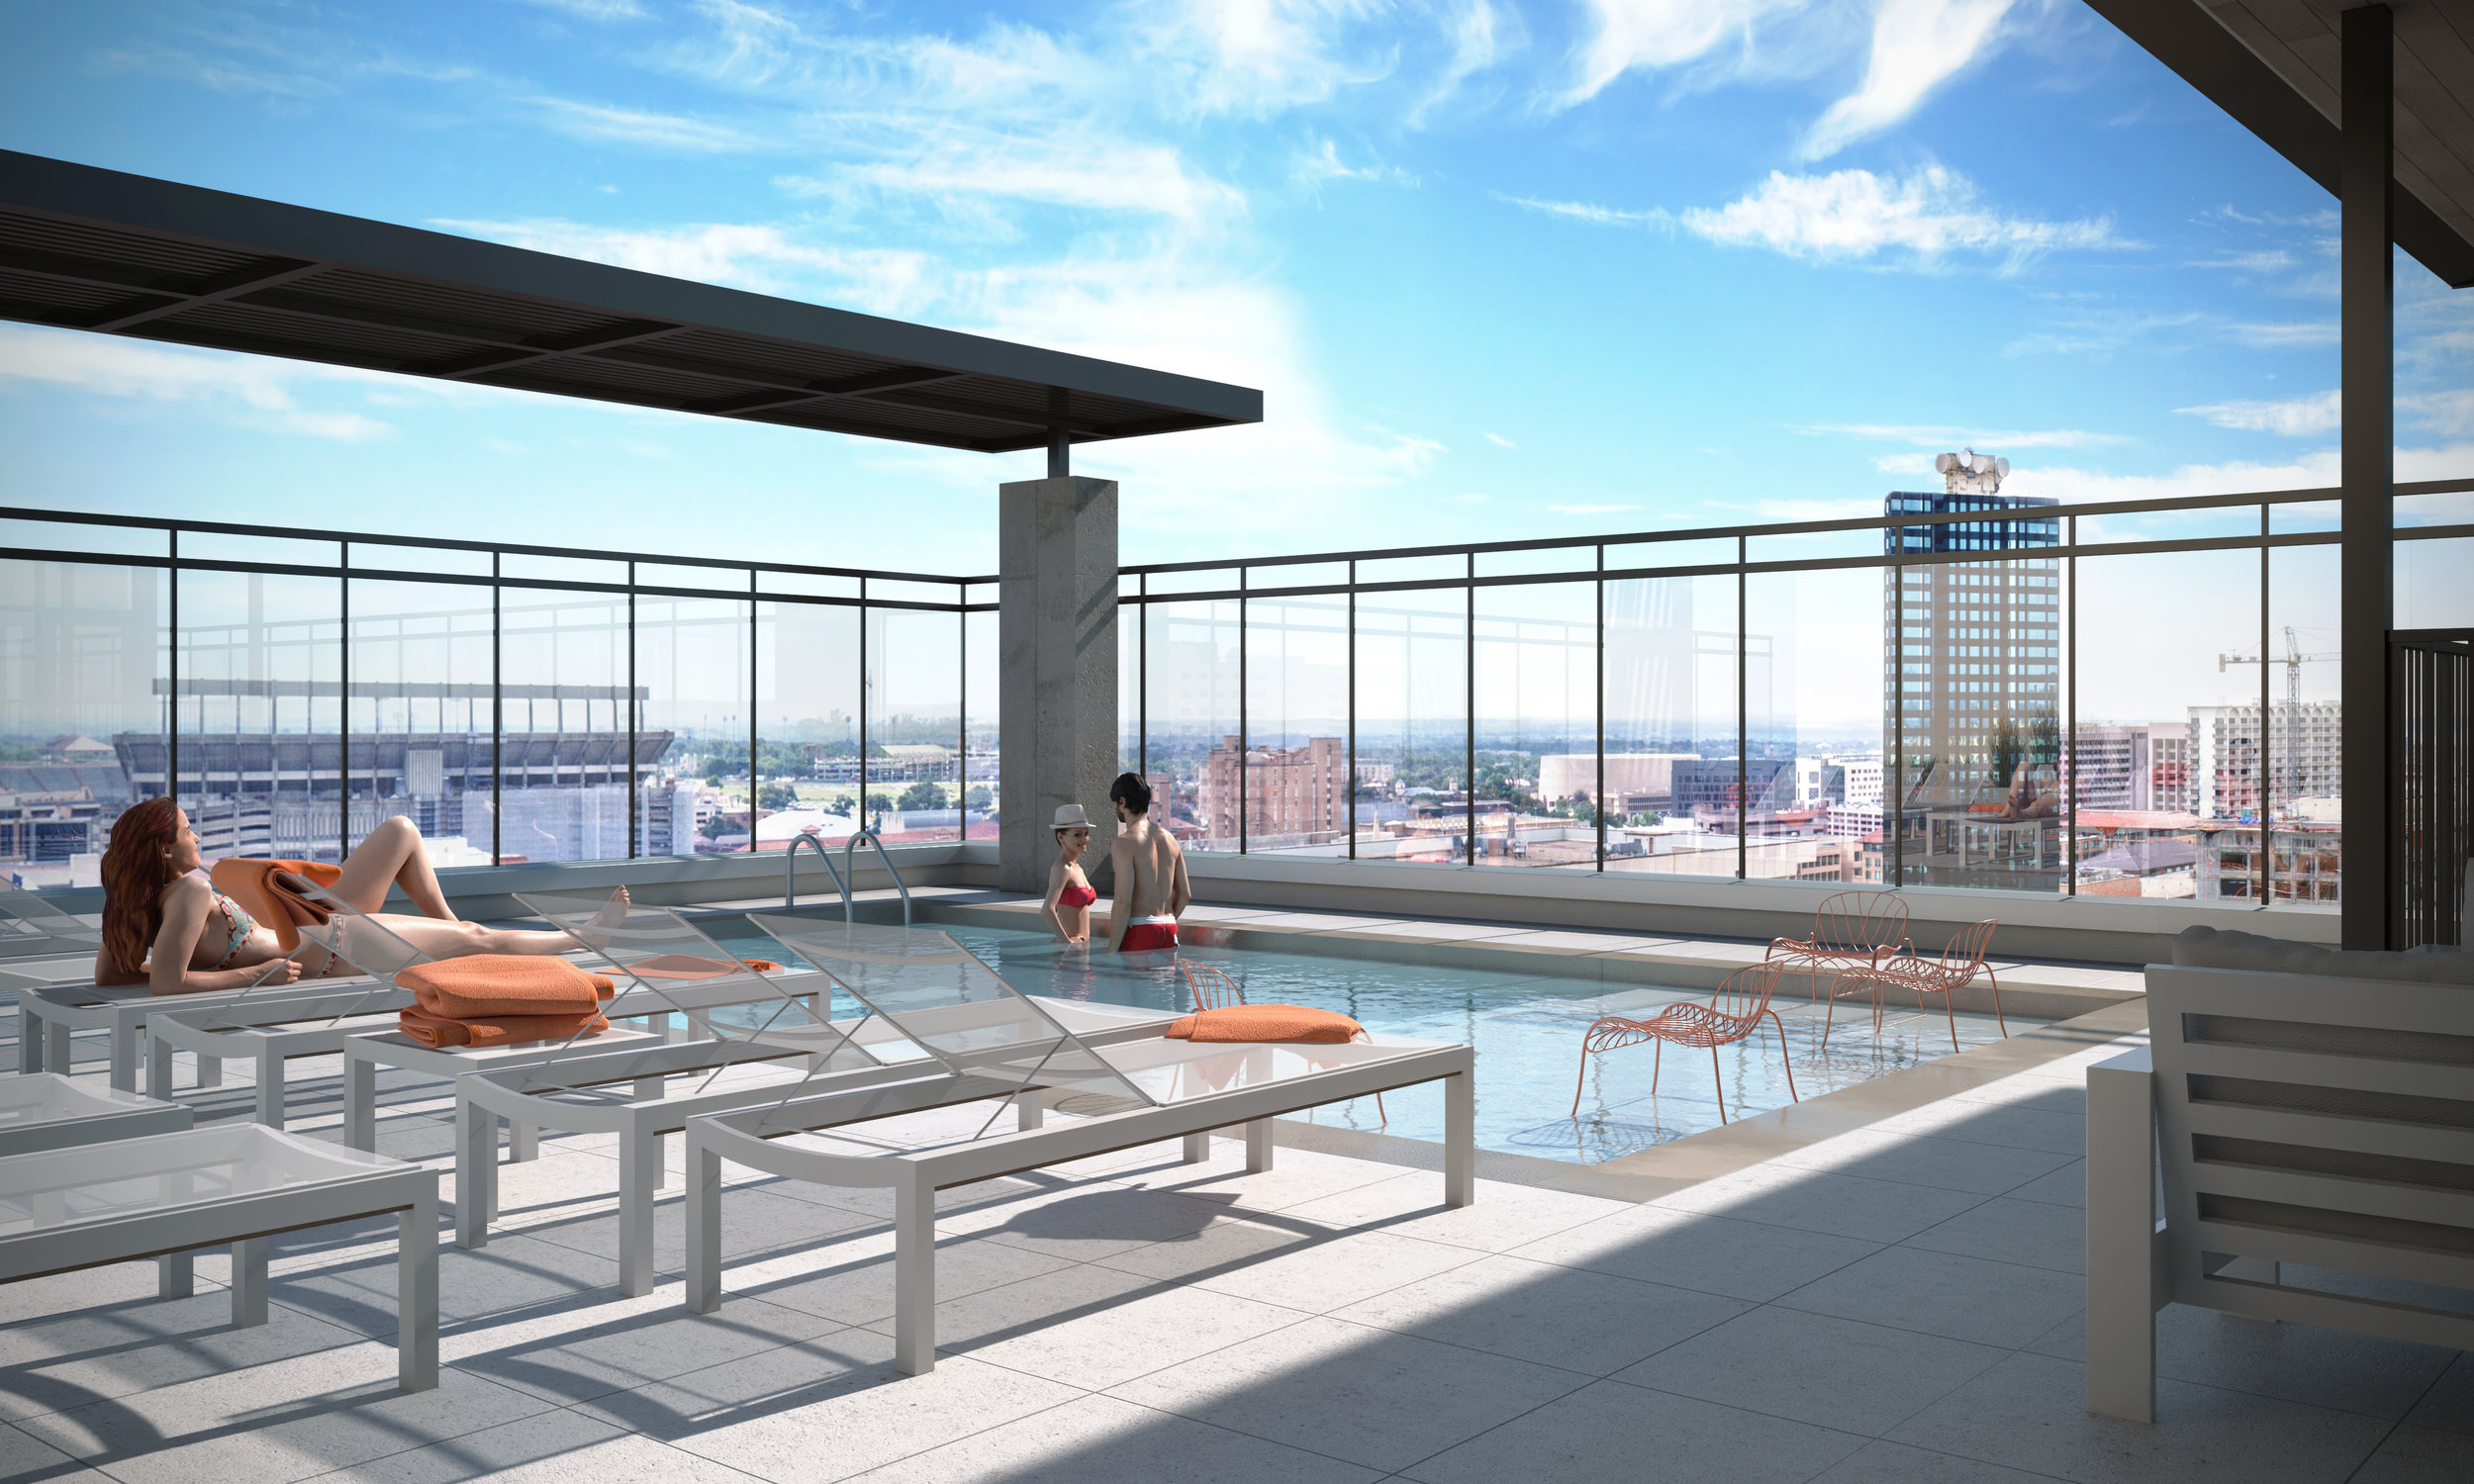 17.08.02 Skyloft community pool 1.jpg